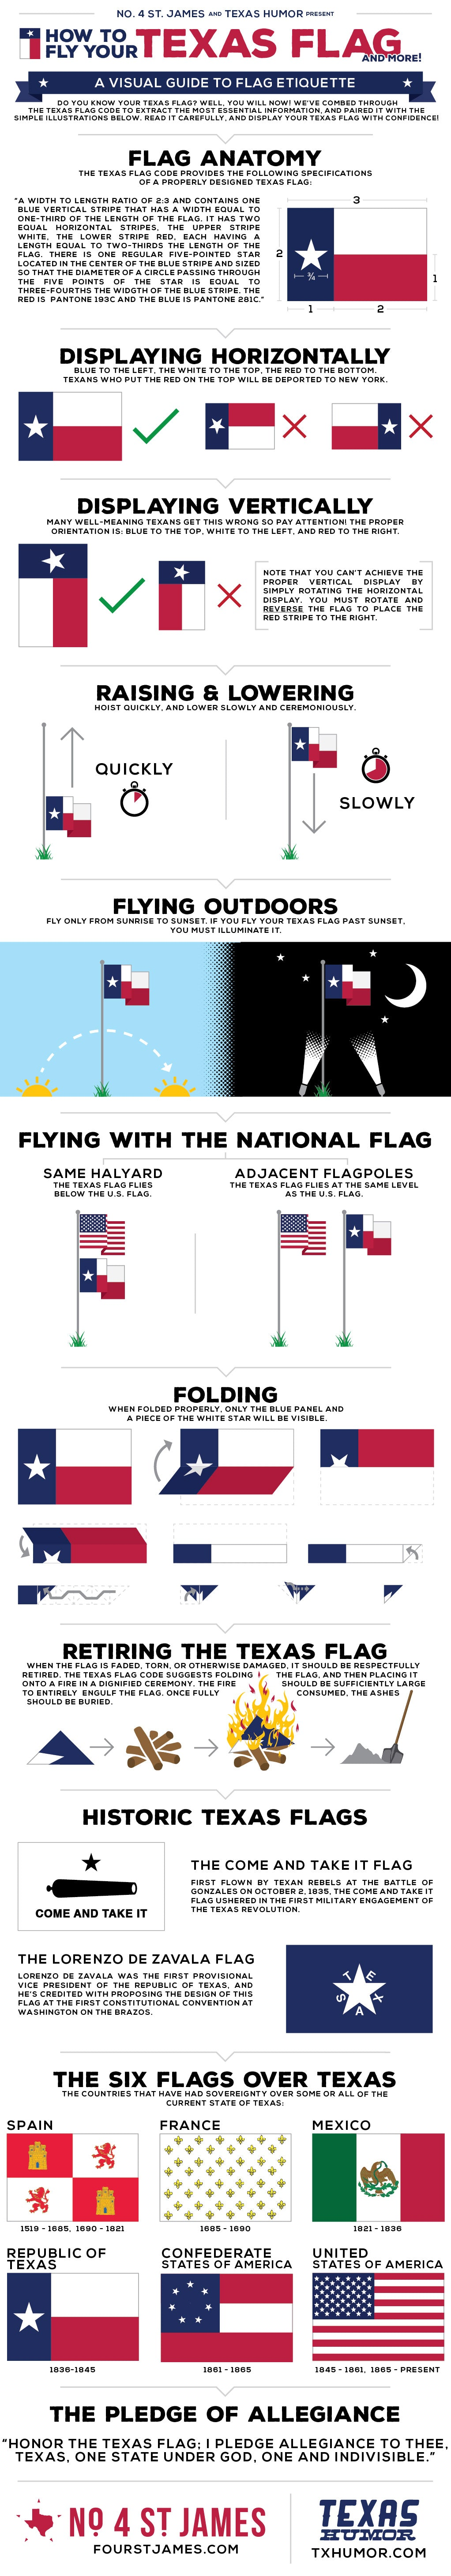 How to fly your texas flag a visual guide to flag etiquette no 4 together with our friends at texas humor we bring you this texas flag guide to view a large high resolution pdf version of the guide click here sciox Choice Image